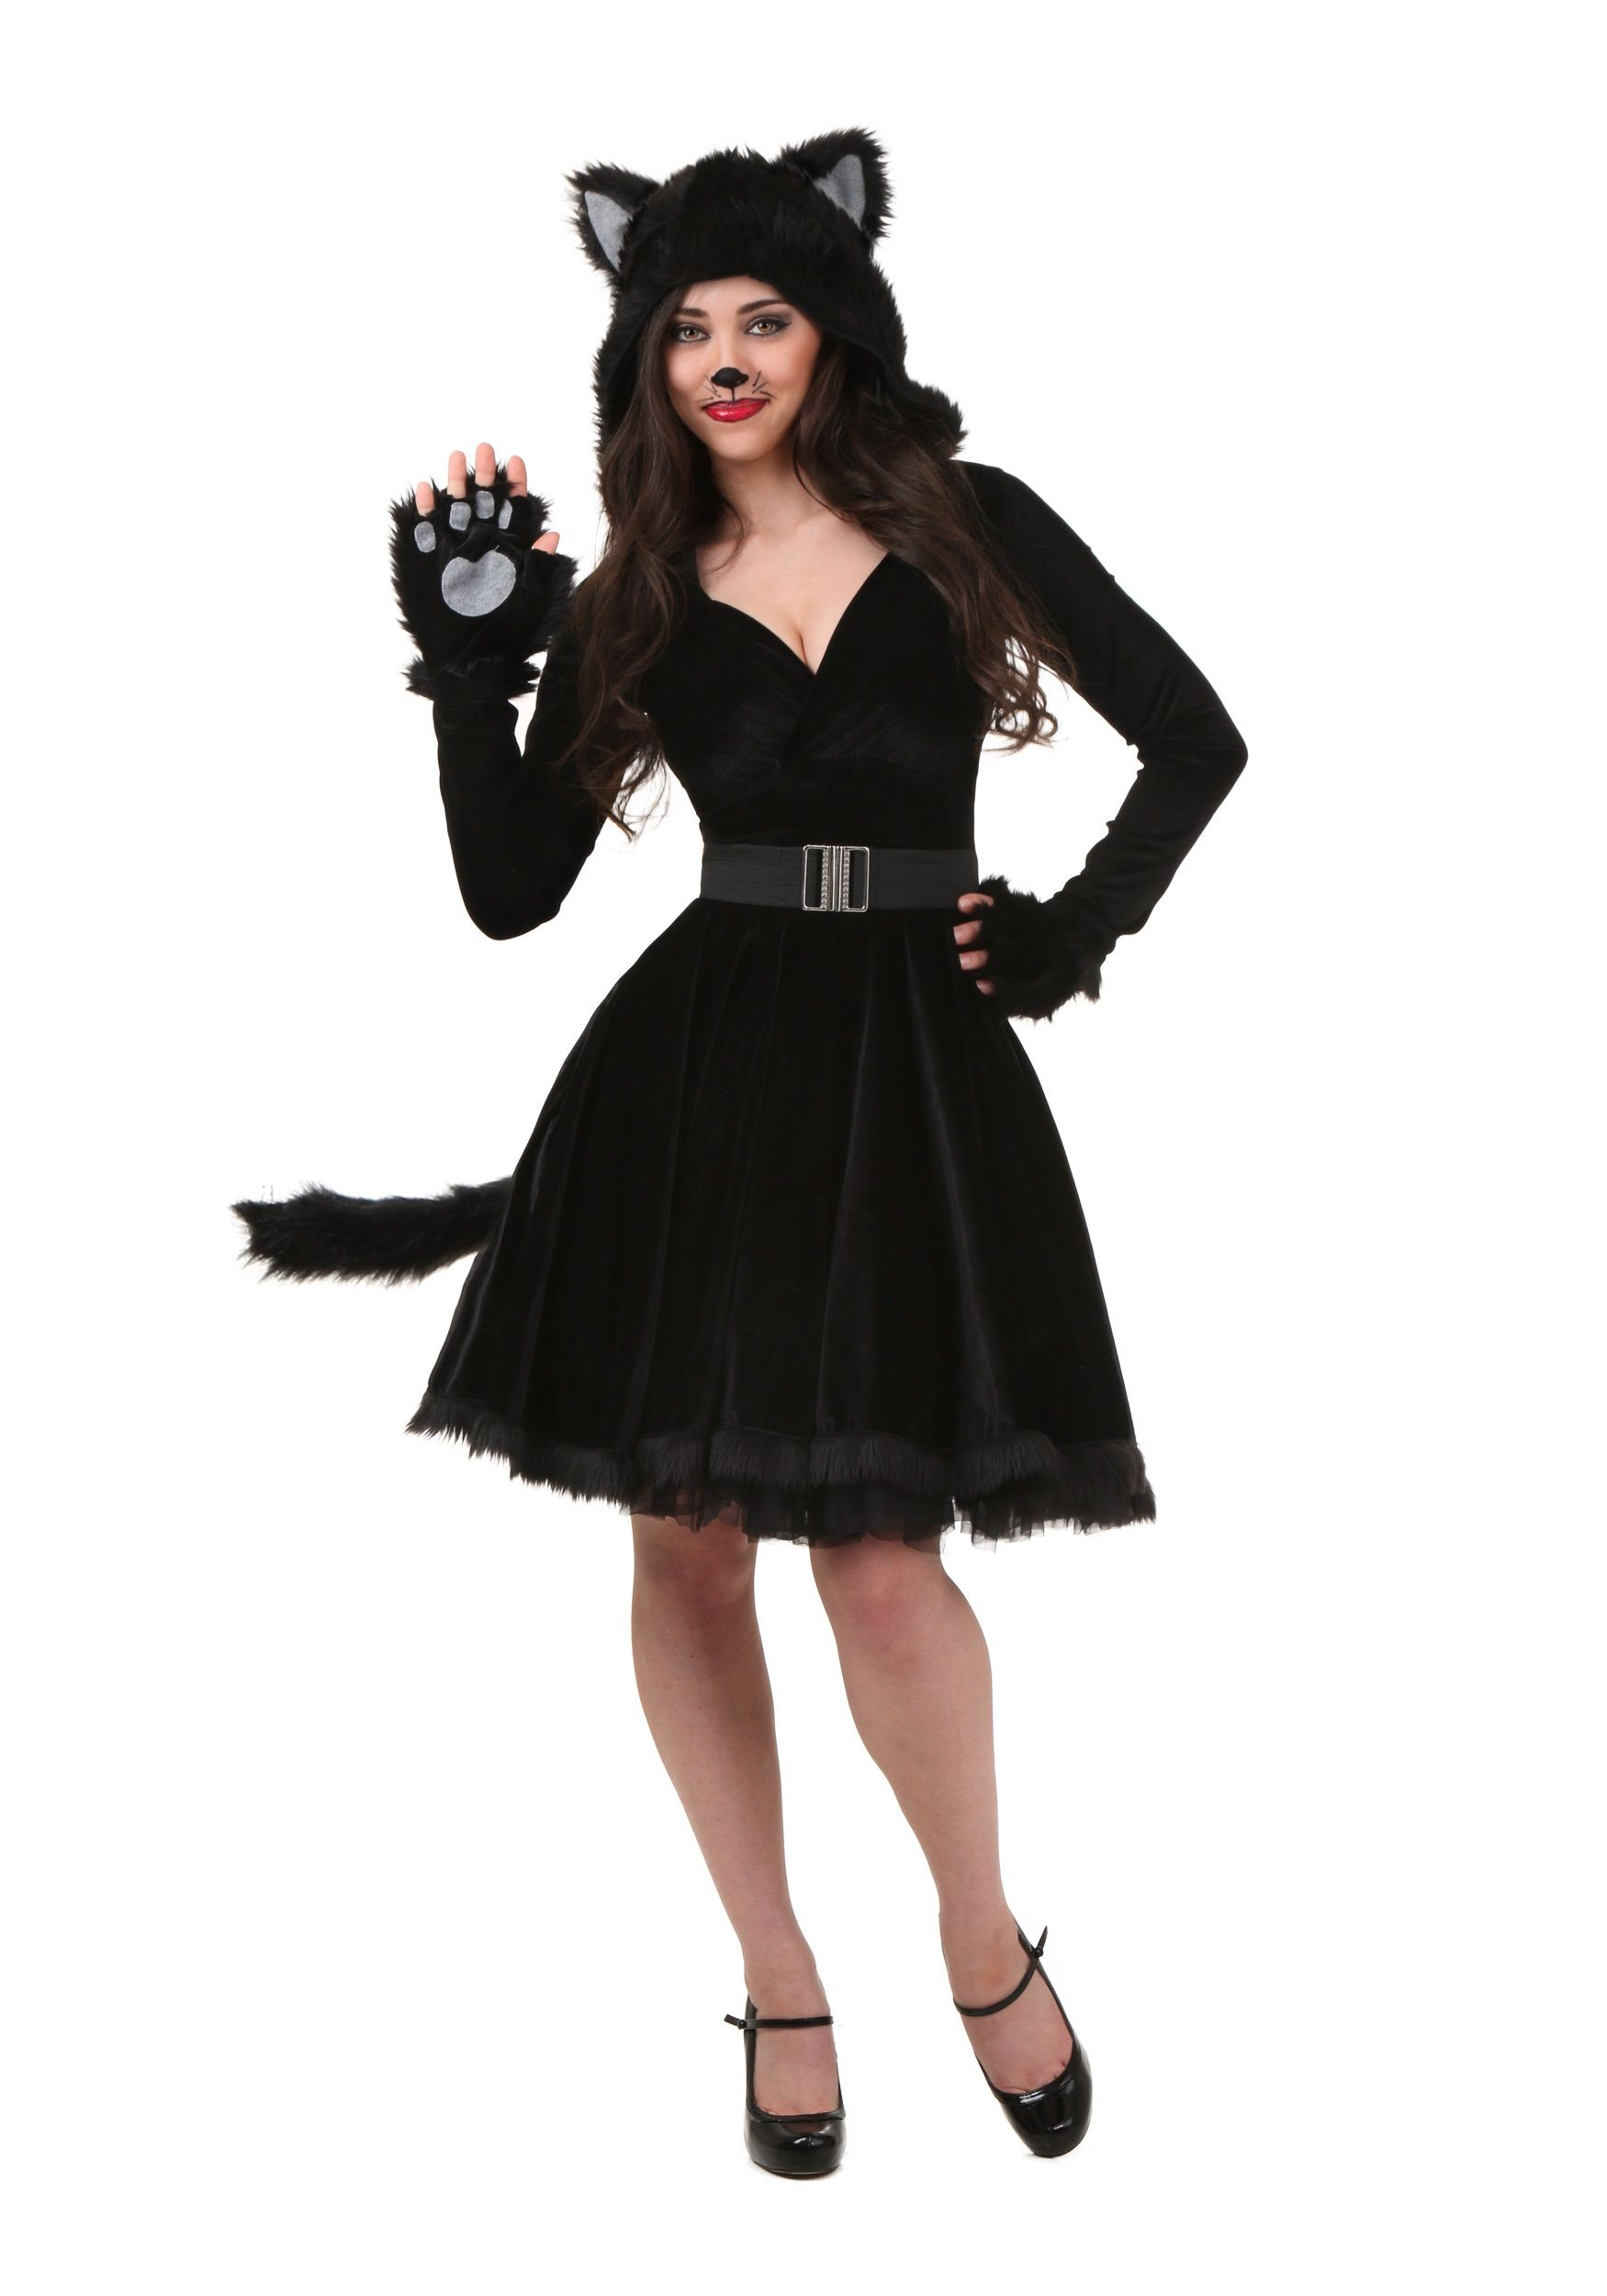 Plus Size Women's Black Cat Costume Trajes de gato